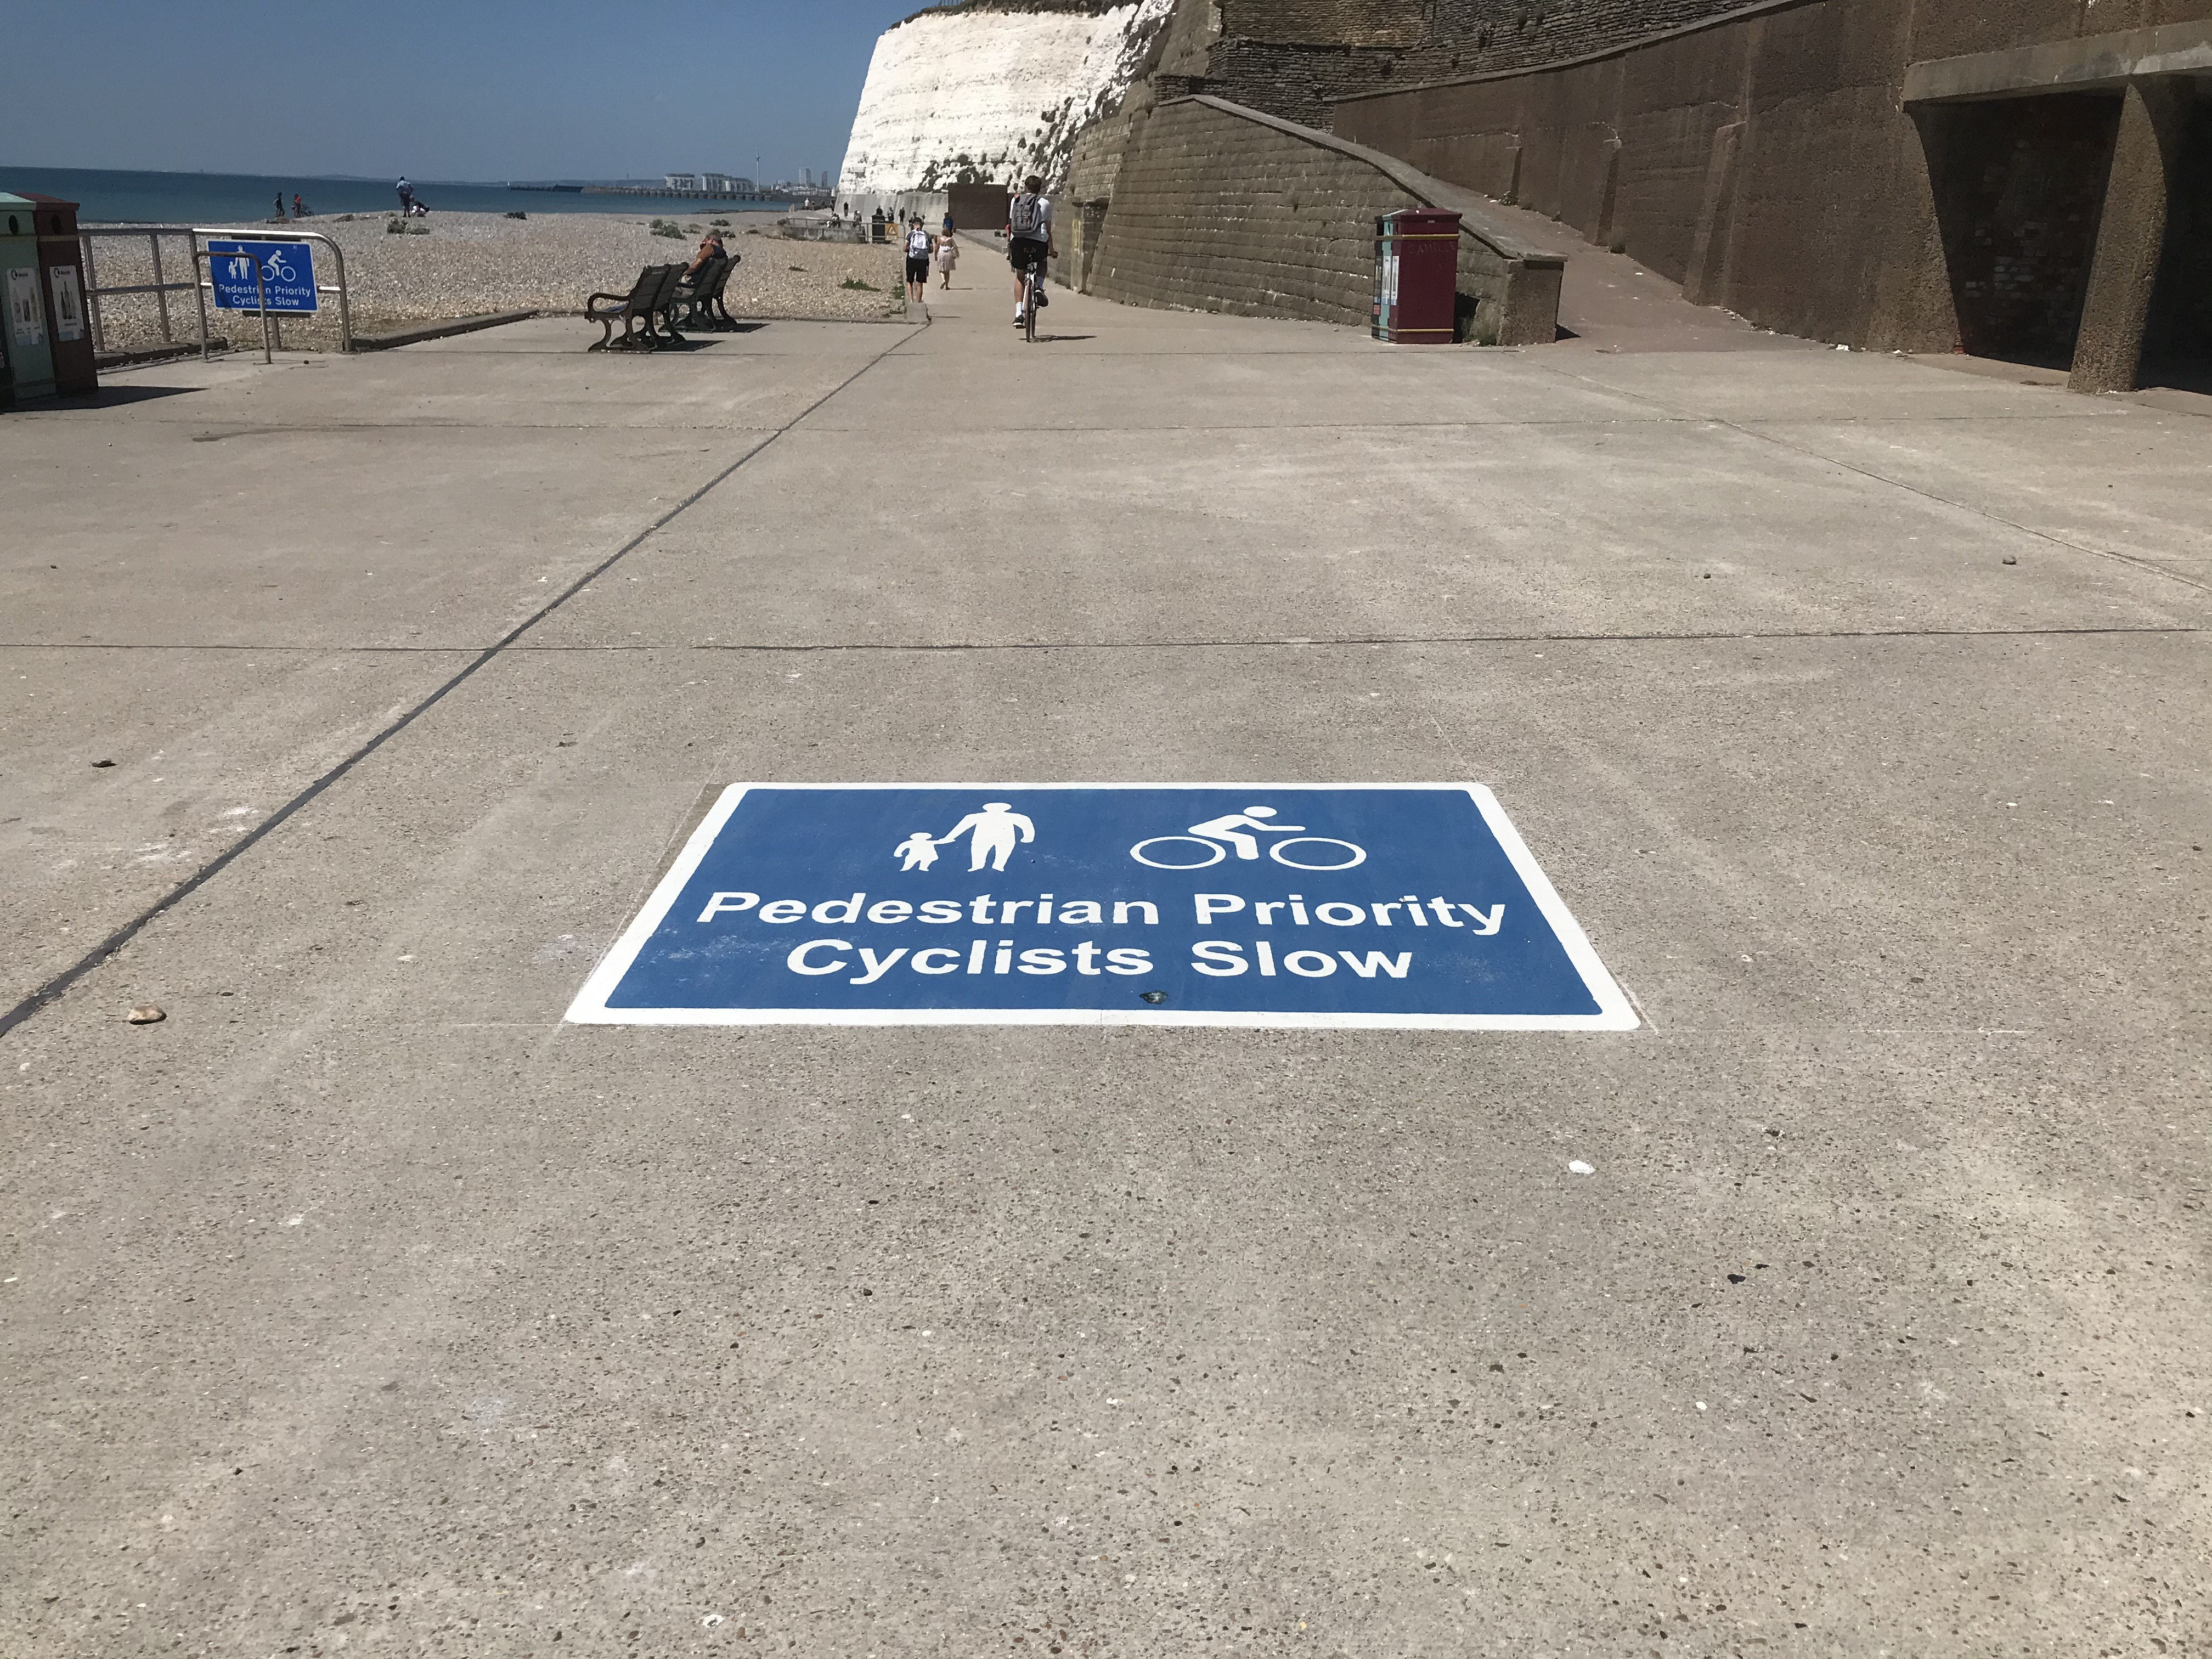 Signage with the words Pedestrian Priority Cyclists Slow on the ground